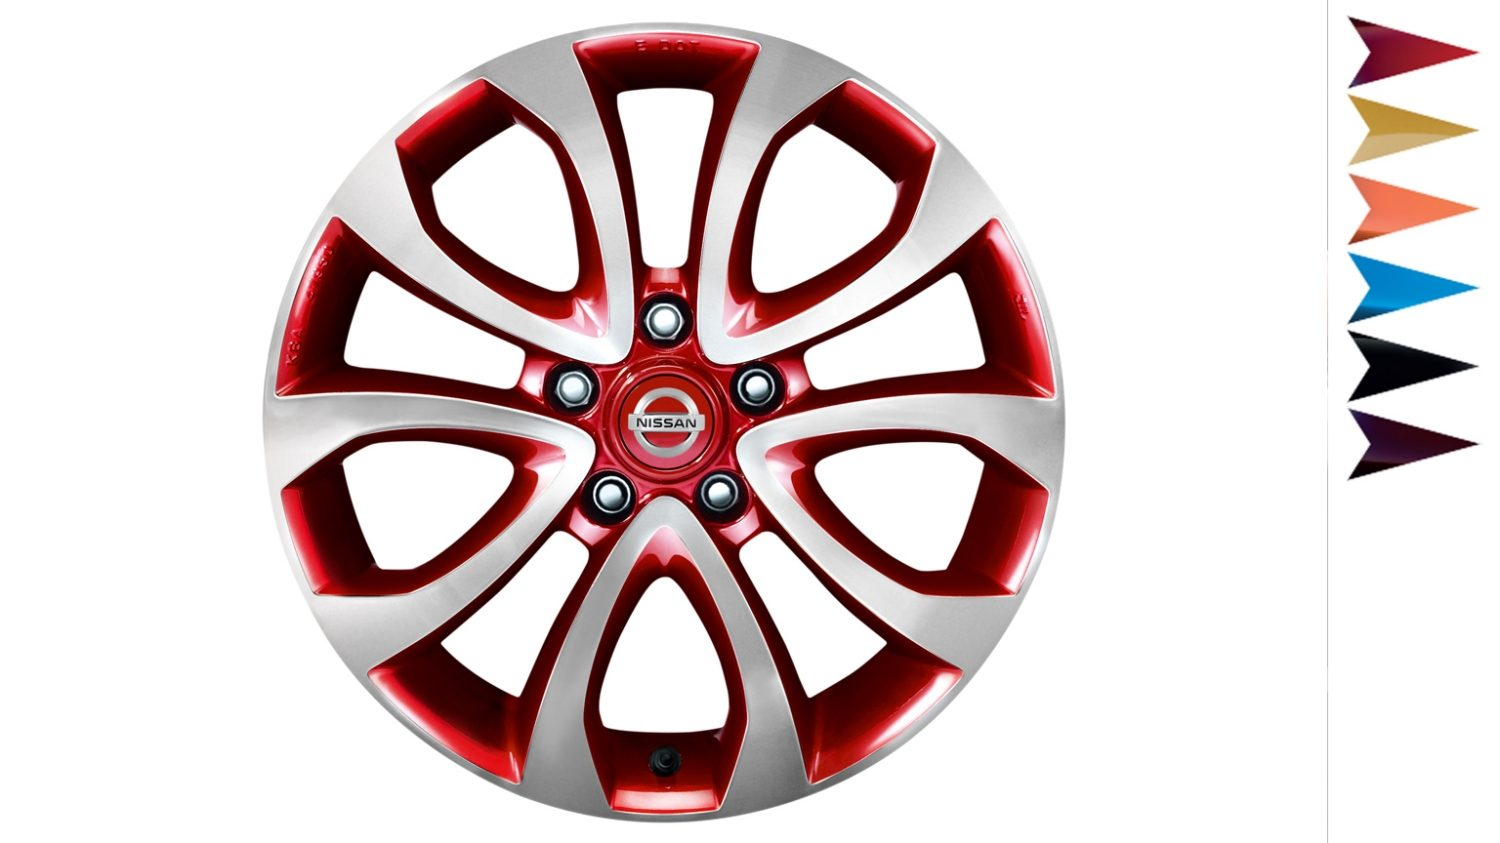 Nissan Juke - Personalisation - 17'' ato alloy wheel detroit red diamond cut